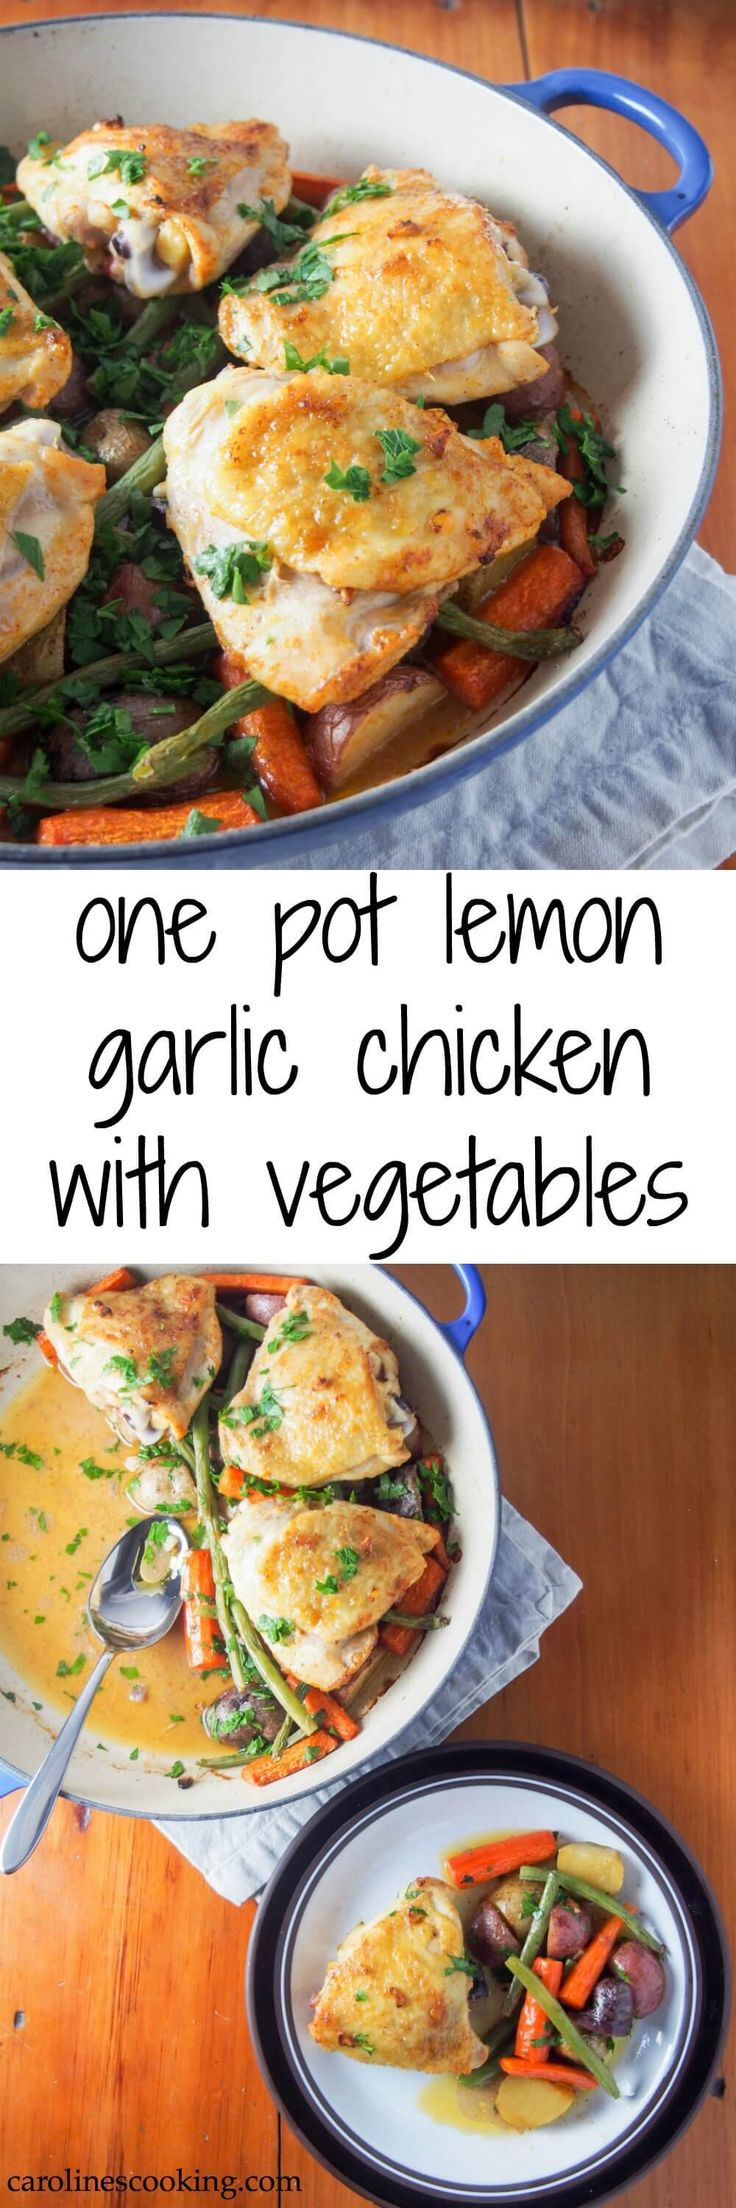 This one pot lemon garlic chicken with vegetables is easy to make, all roasted in the oven, with delicious simple flavors. A great meal on a busy night.